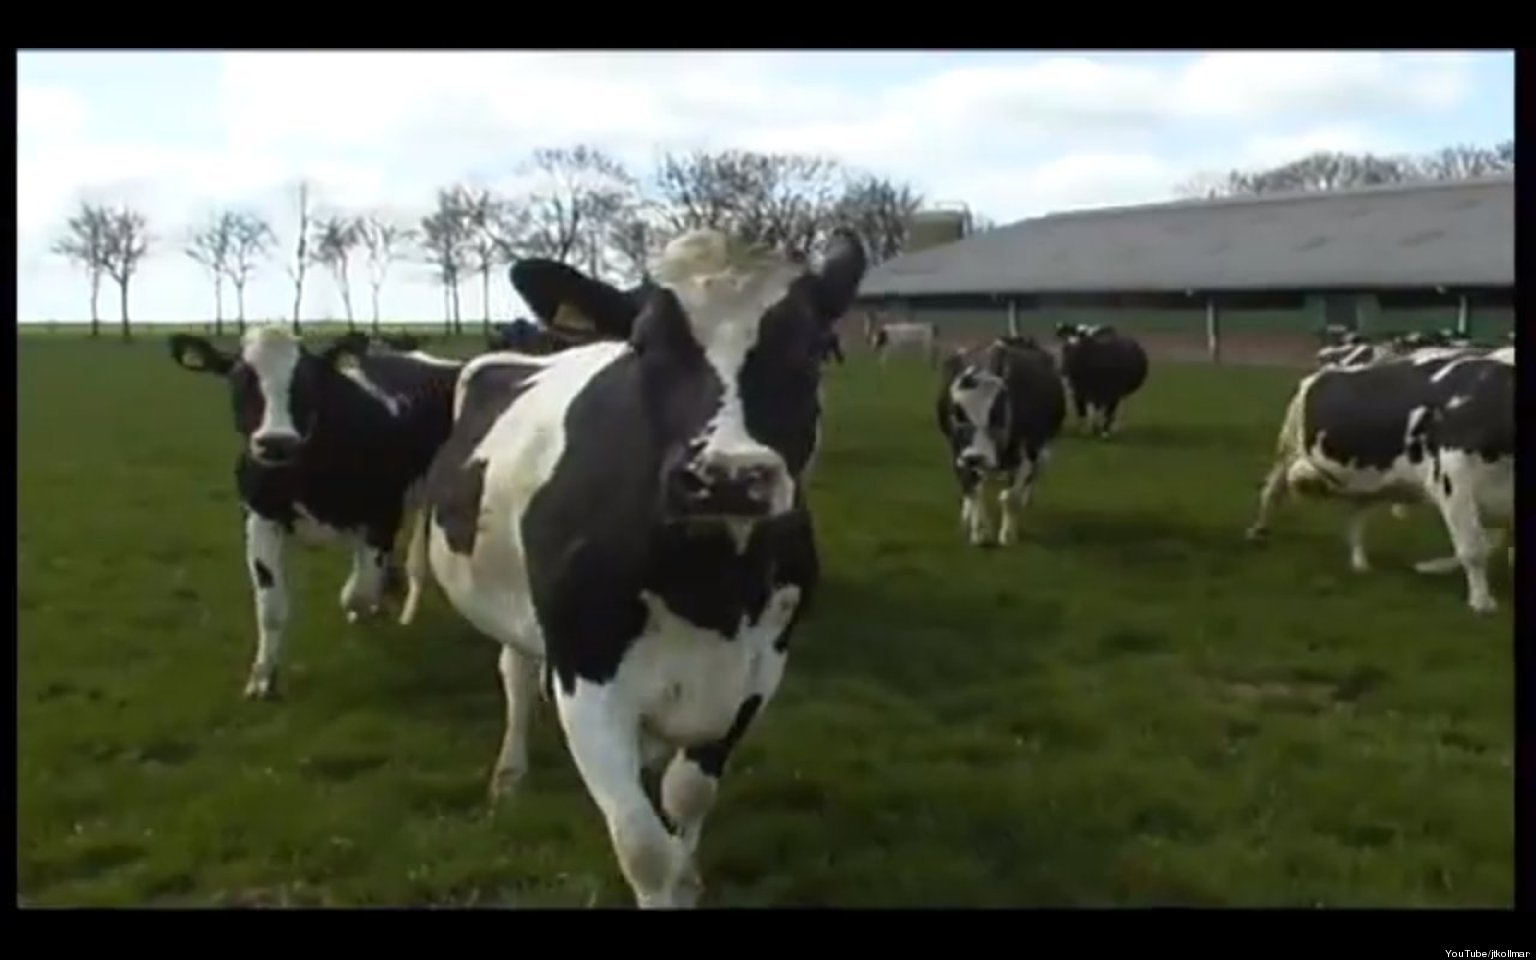 beemsters dancing cows greet spring greens with